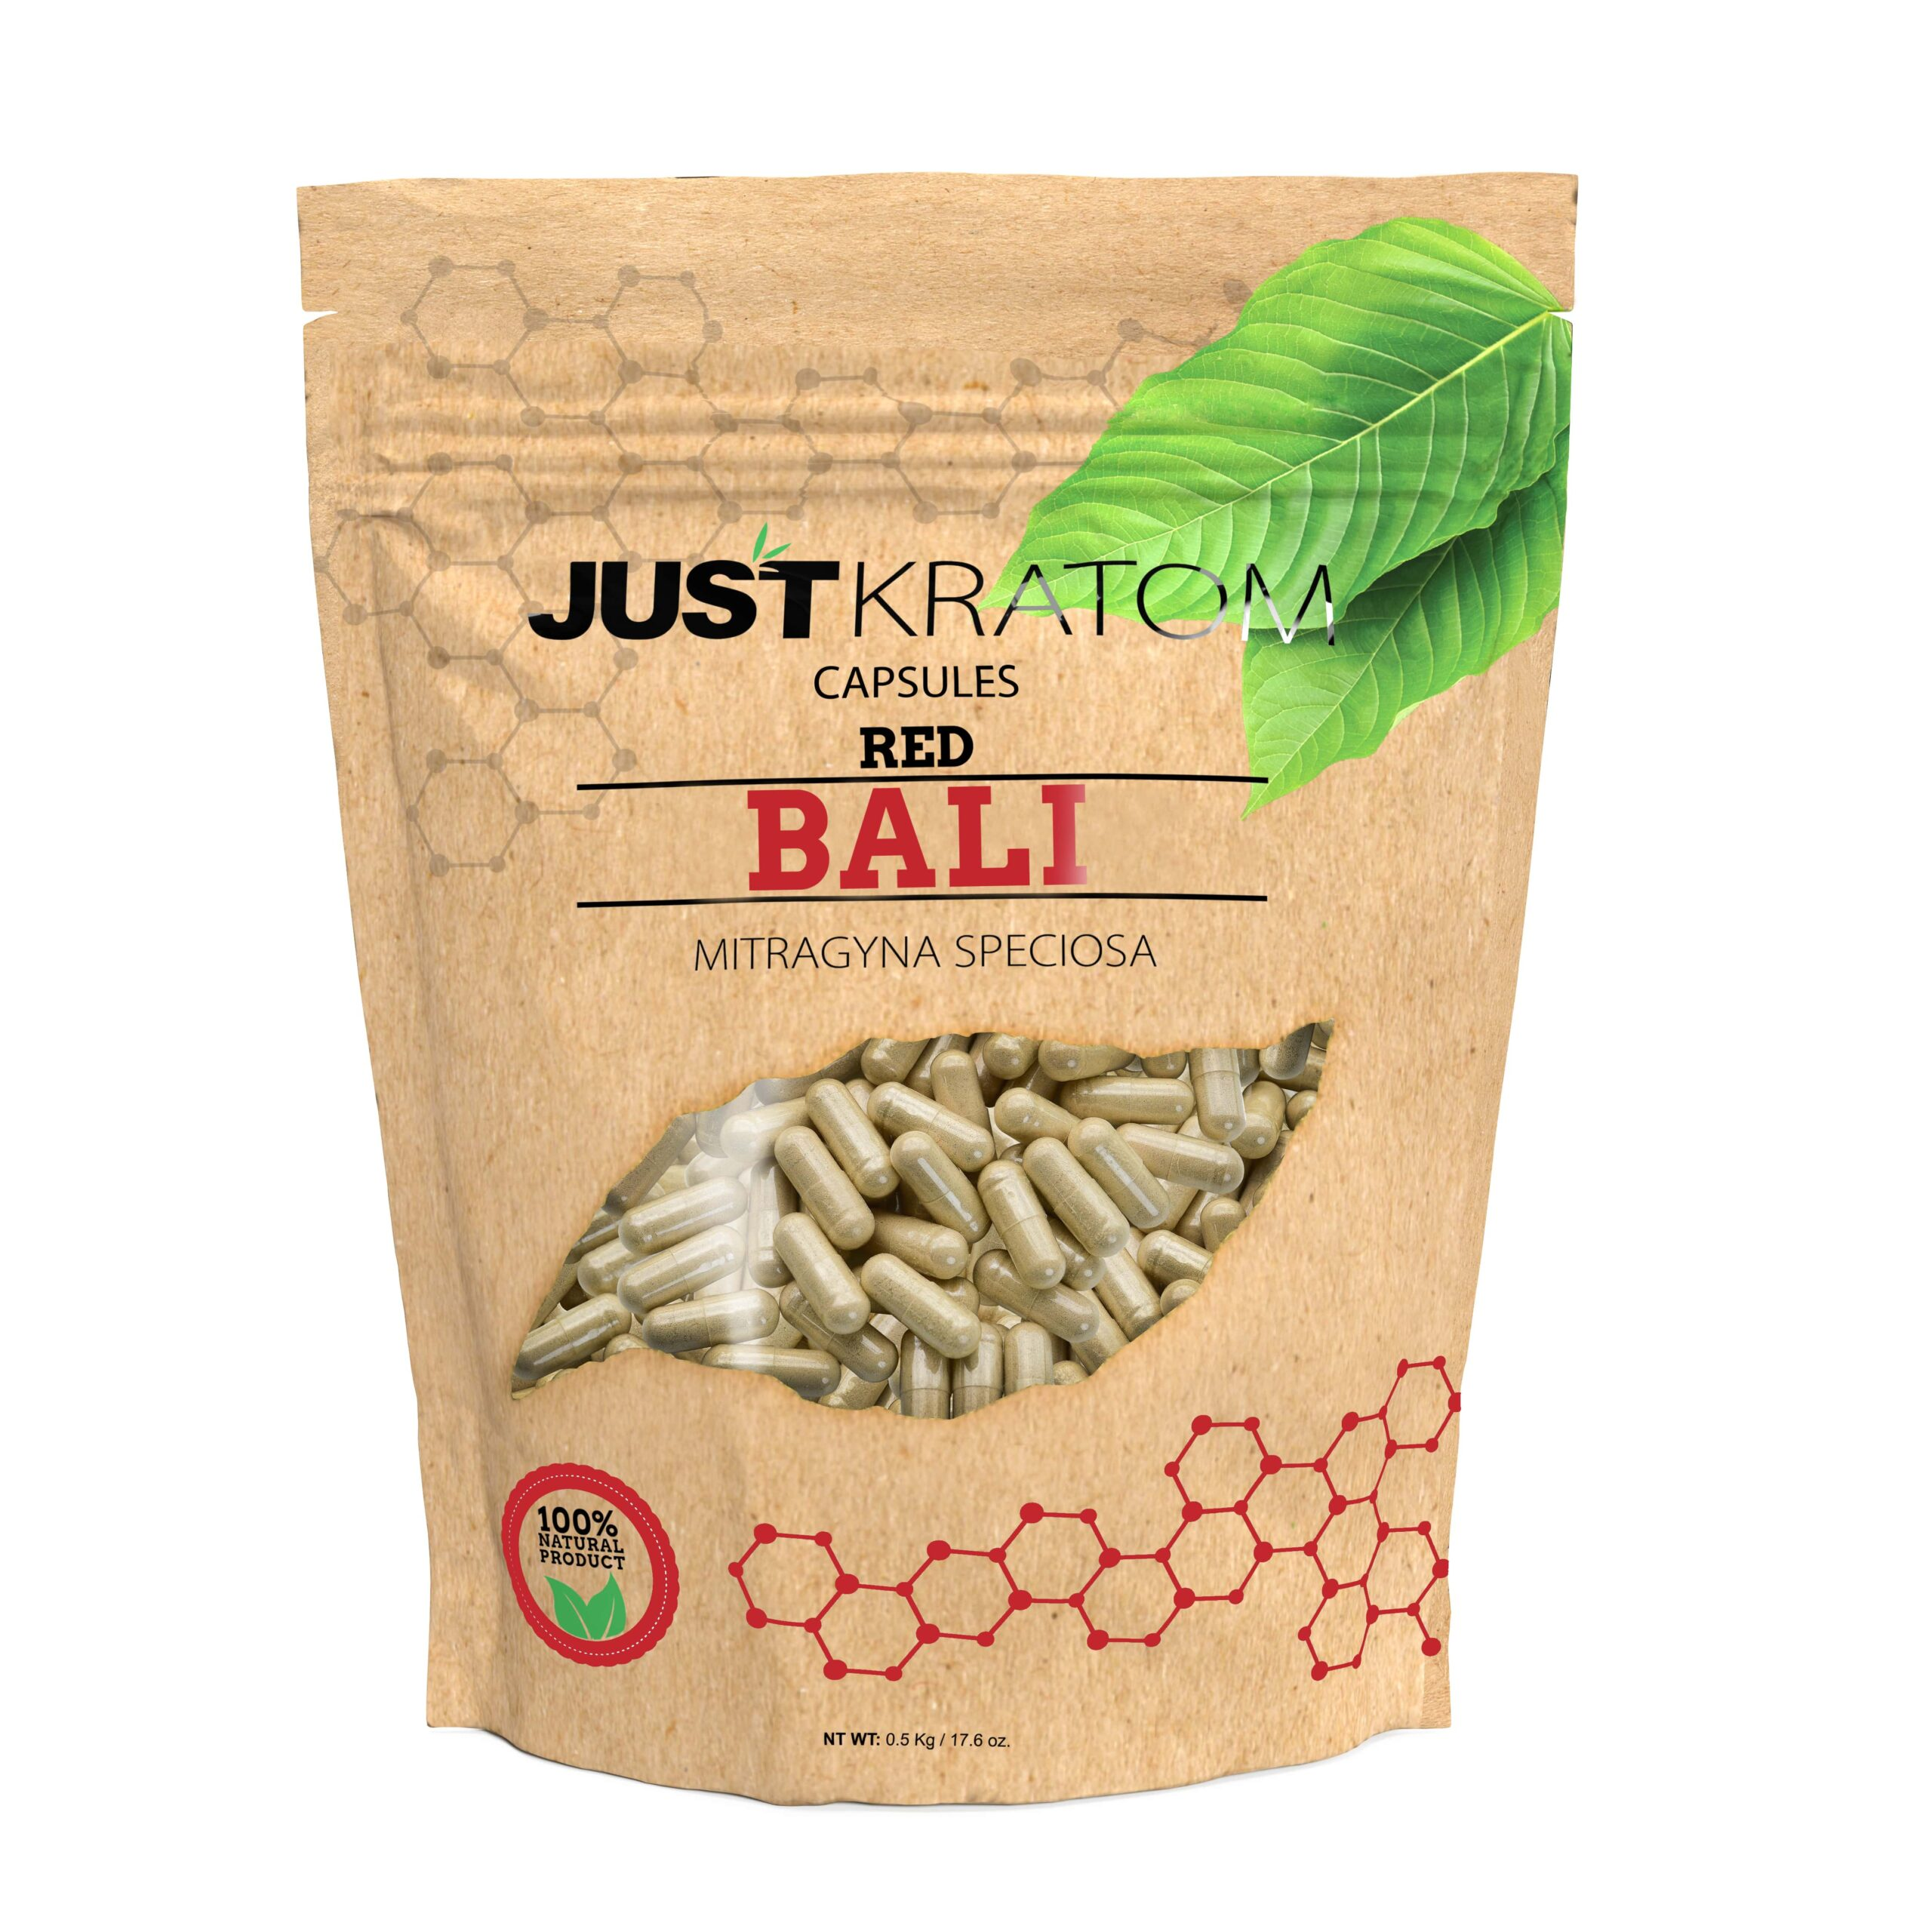 What Are Kratom Pills